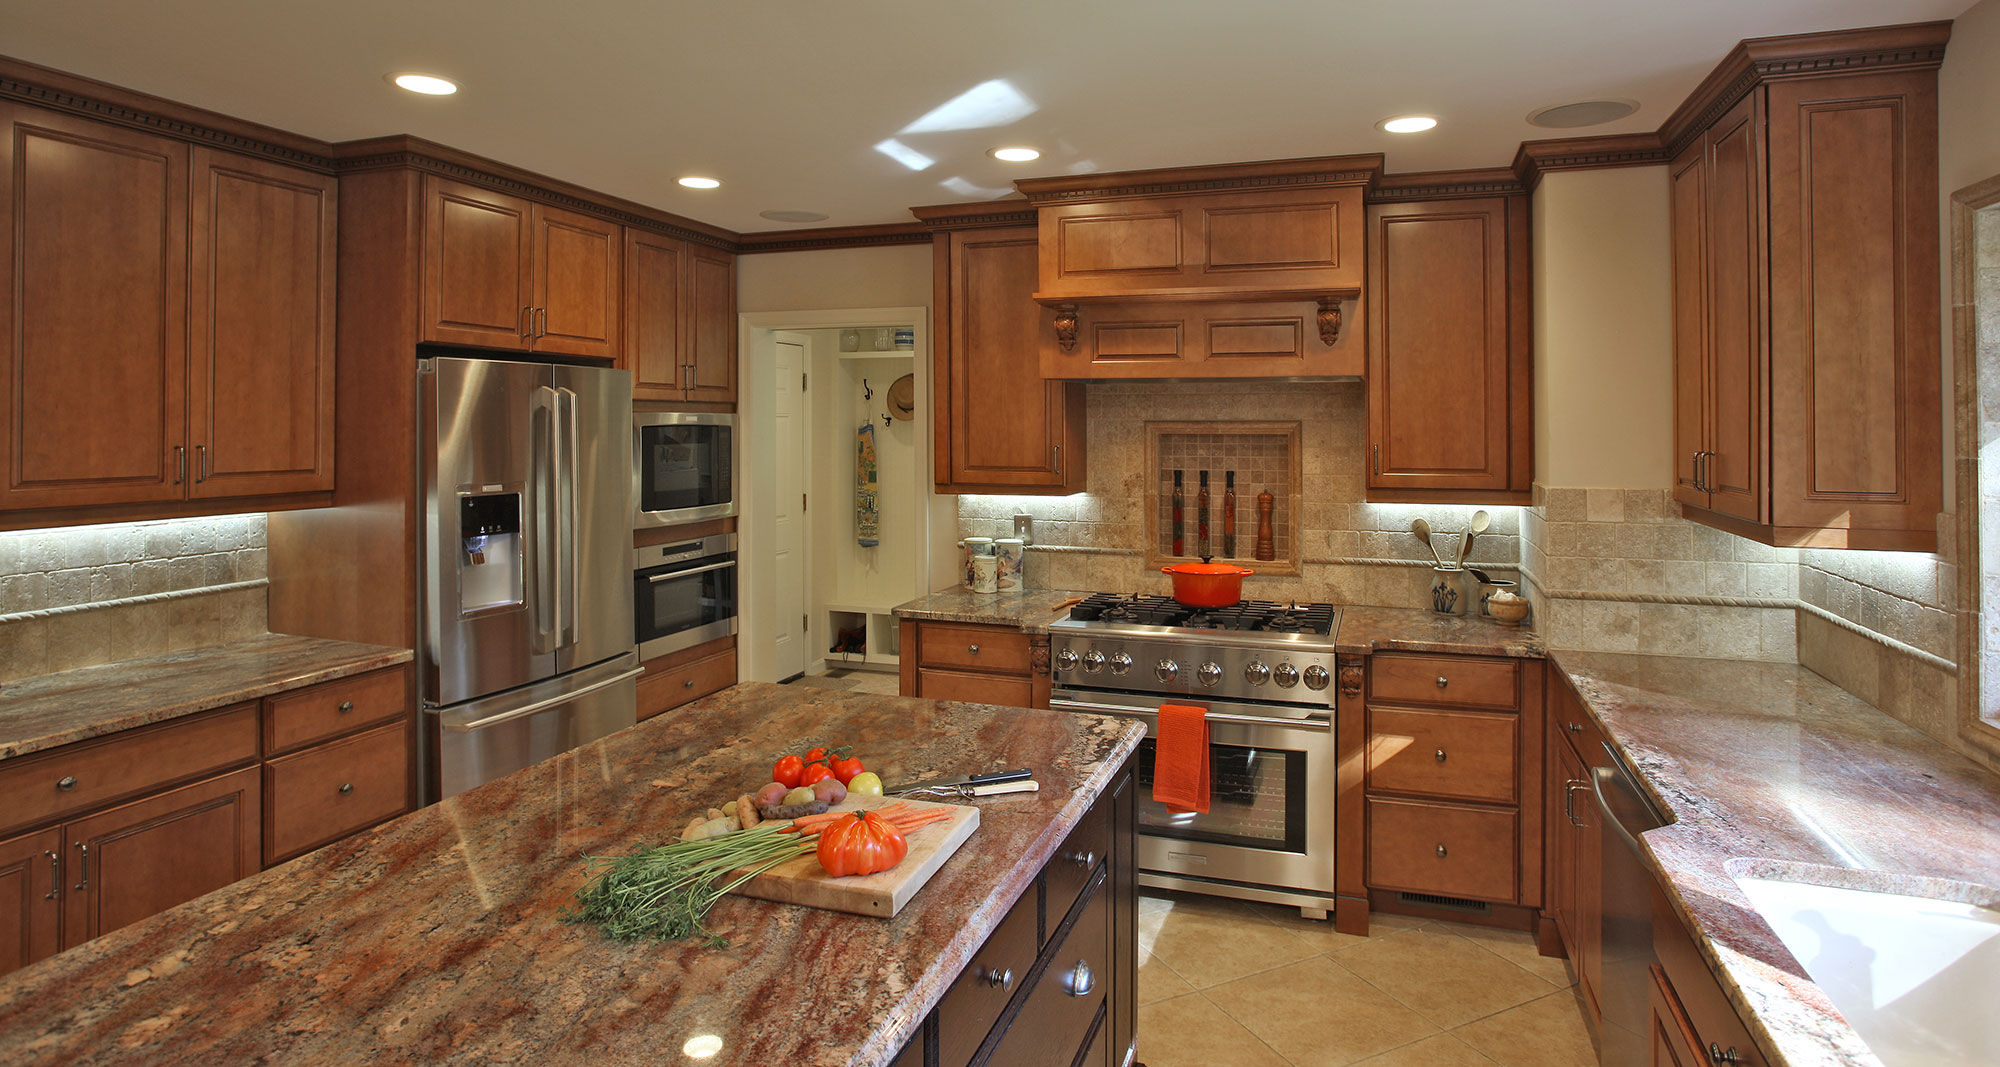 kitchen and bath remodeling serving northern virginia maryland washington dc kingston design remodeling - Bathroom Remodeling Fairfax Va